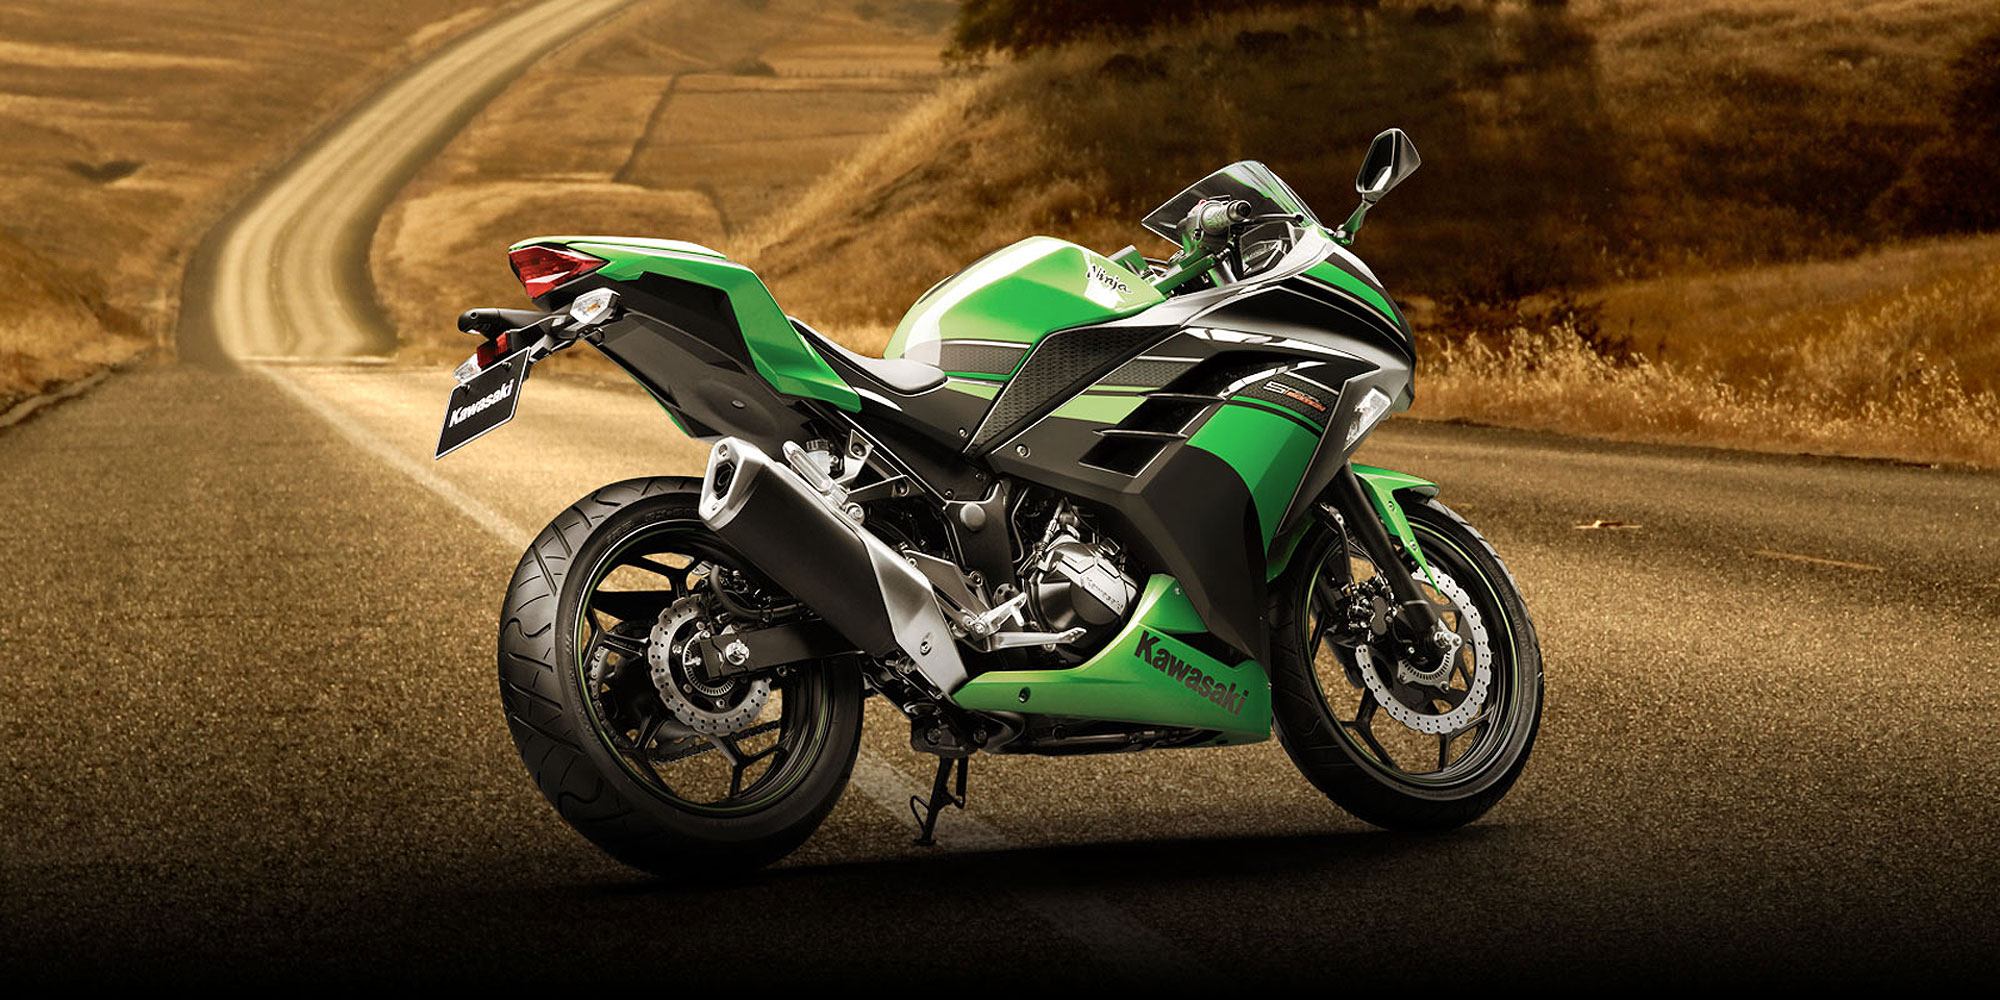 Kawasaki Backgrounds Amp Kawasaki Ninja Wallpapers For Download